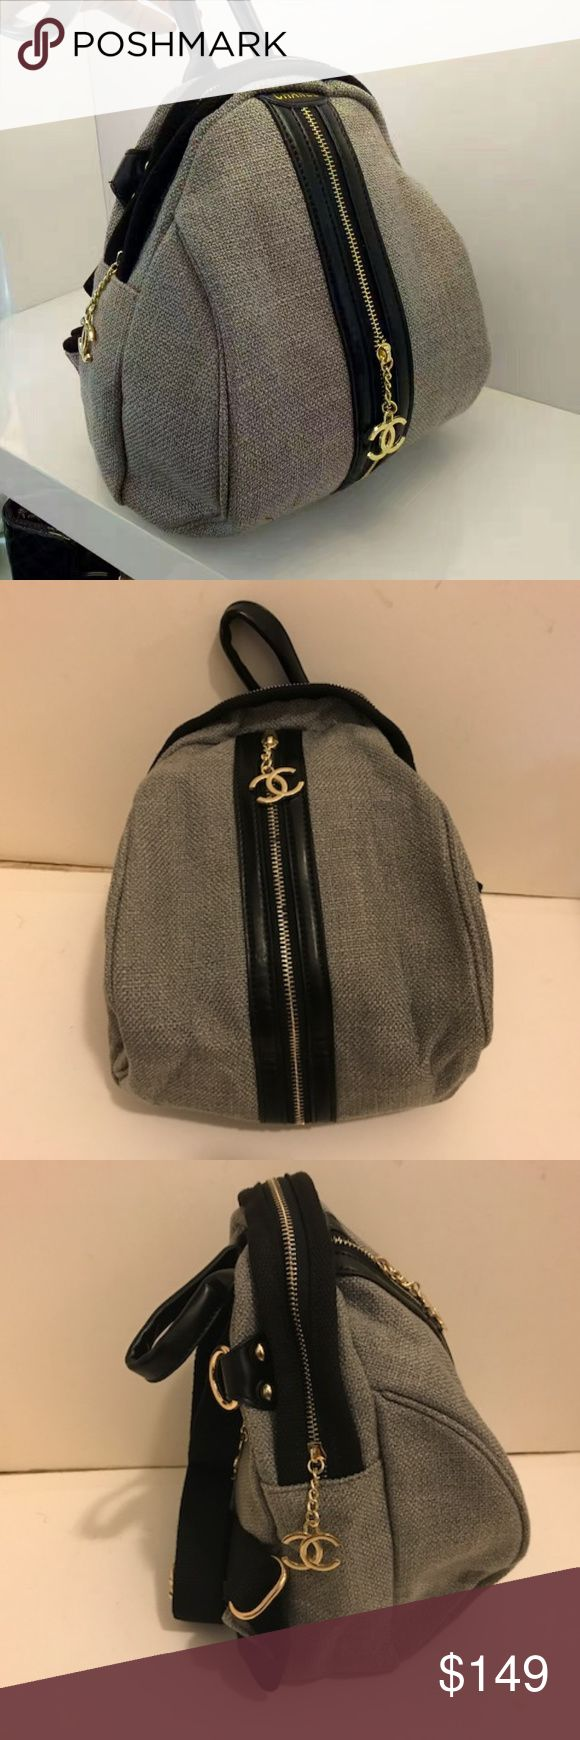 """Chanel shoulder bag Cross Body bag Gray zip Authentic Brand New Chanel VIP Gift Backpack Cross Body bag Color: Gray. Material Canvas. Hardware: Gold. Measure: H12 x W8 xD7"""" It was a VIP gift Form a Flagship store in Asia. Excellent Quality !! Can be use as a Backpack Or a cross body bag. comes with extra strap CHANEL Makeup Brushes & Tools"""